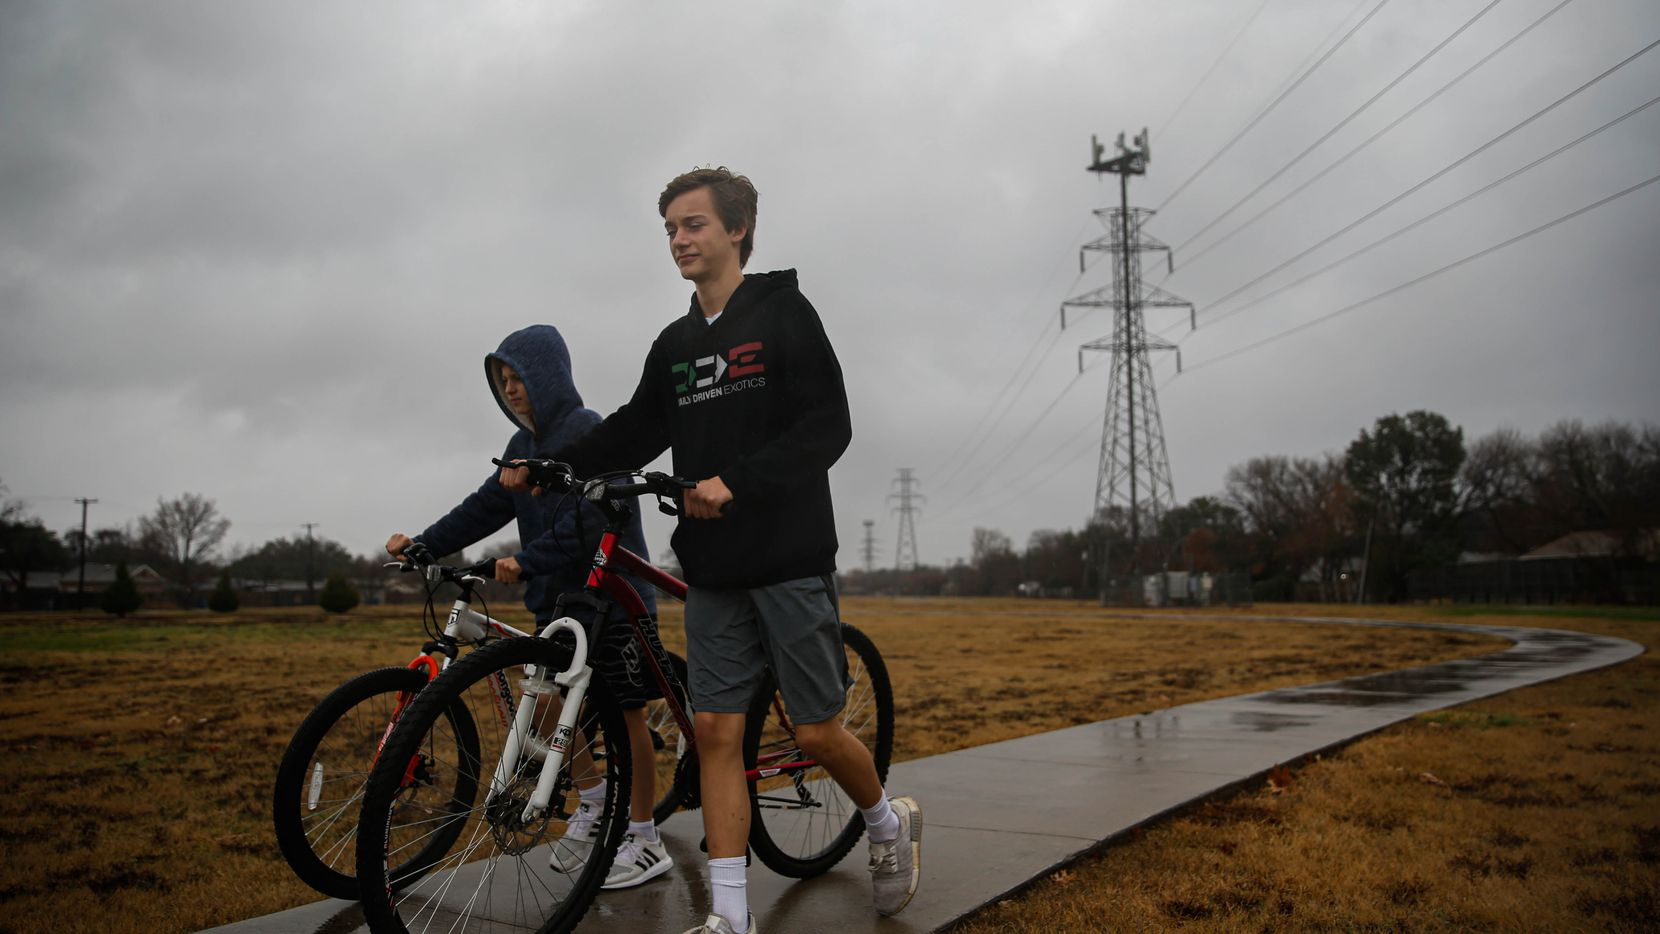 (From left) Henry Webb, 11, and his brother Jack, 14, walk to their mother's SUV after getting stuck in the rain at Royal Park on Dec. 28, 2019 in Dallas.